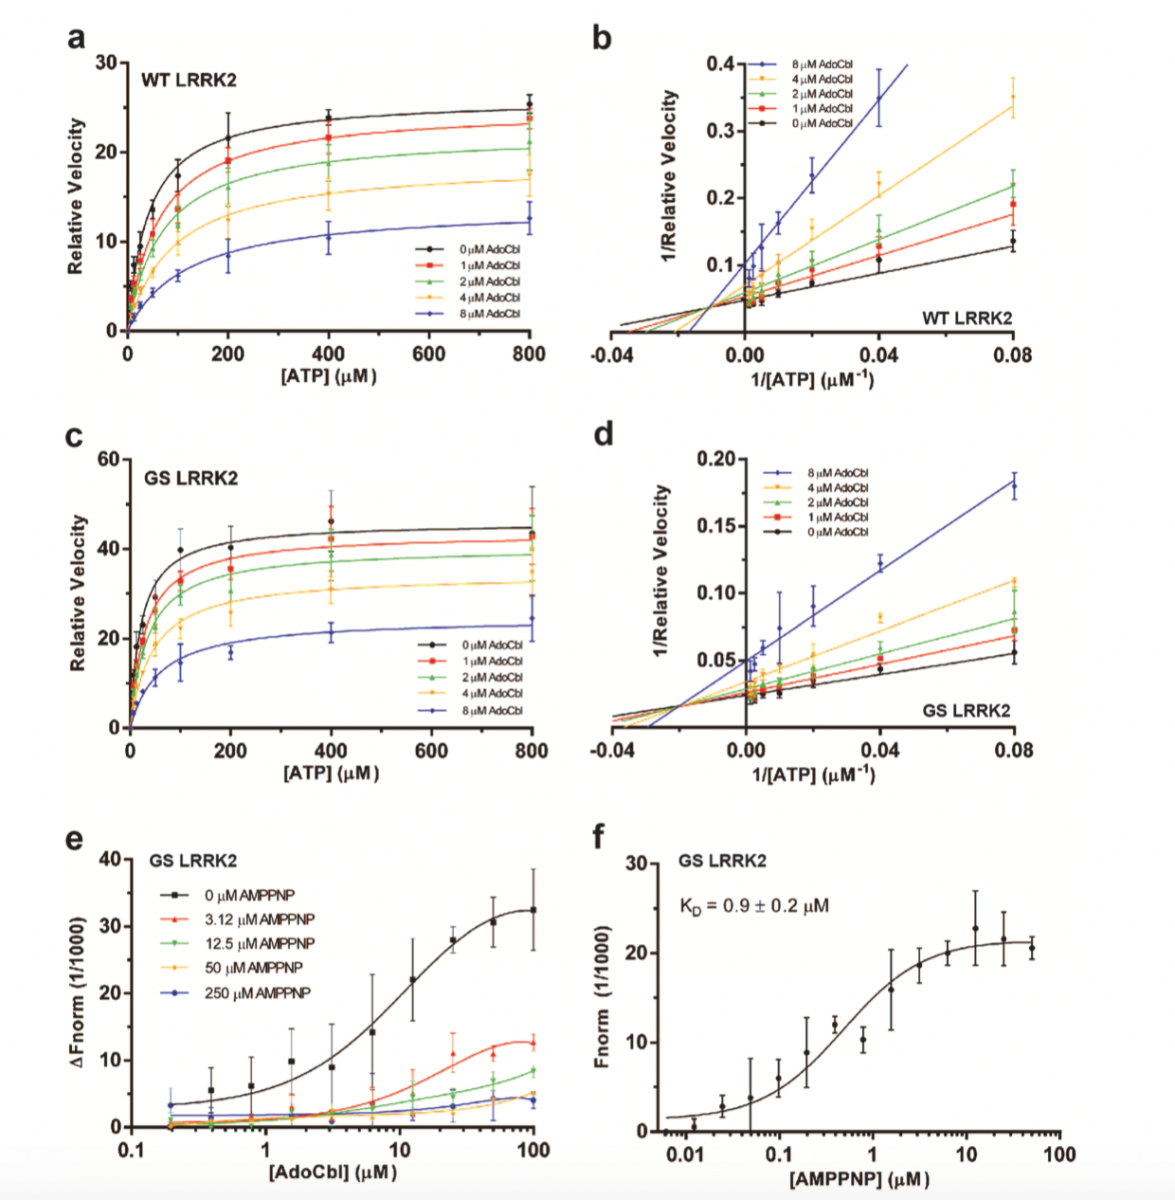 LRRK2 Protein Domain Structure Display and Pathogenic Site Distribution